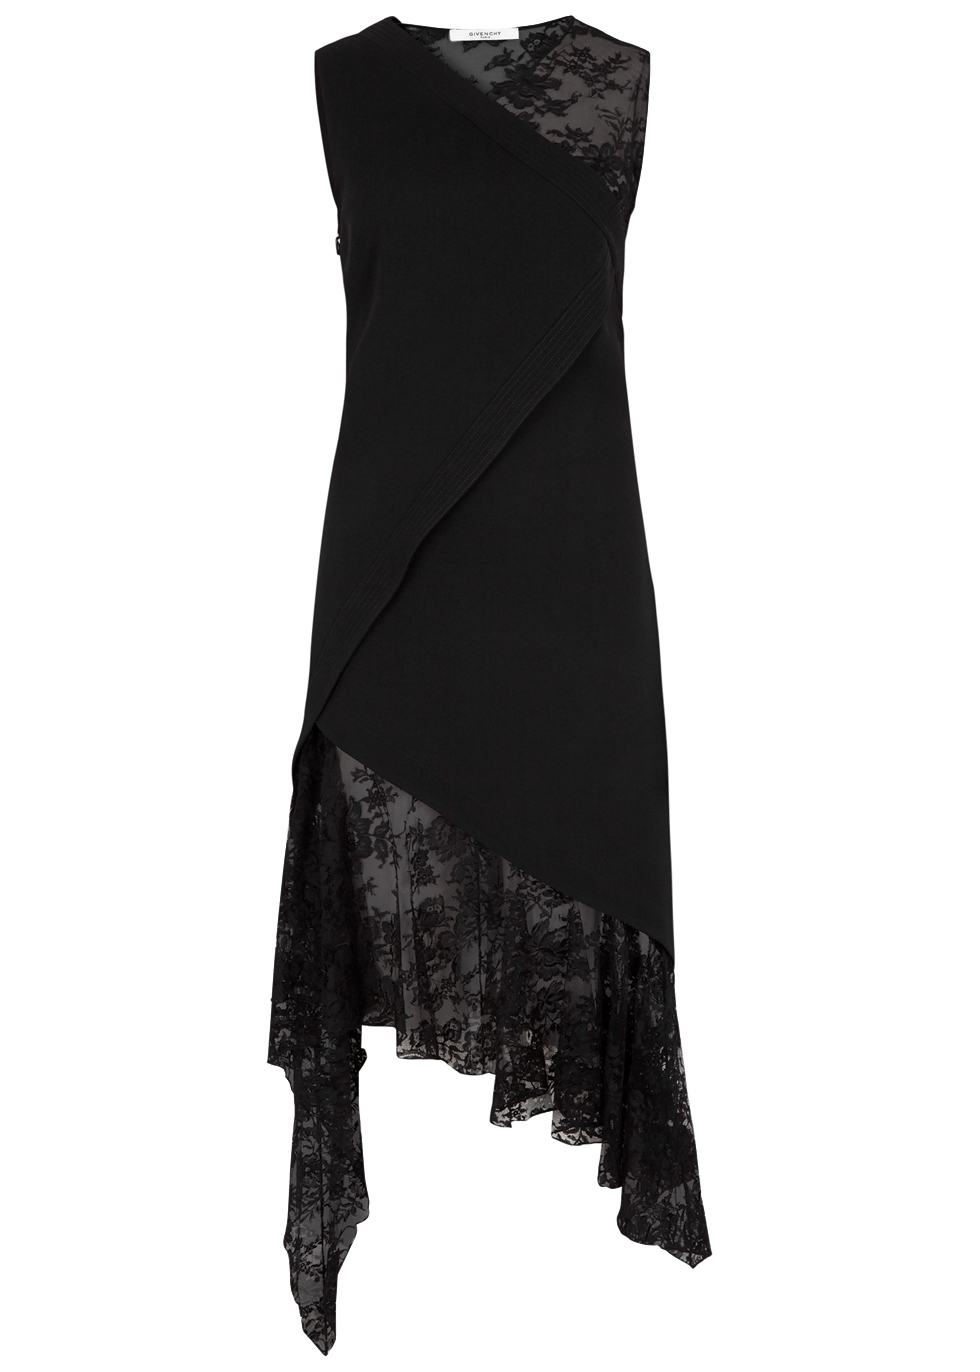 GIVENCHY BLACK WOOL AND LACE DRESS